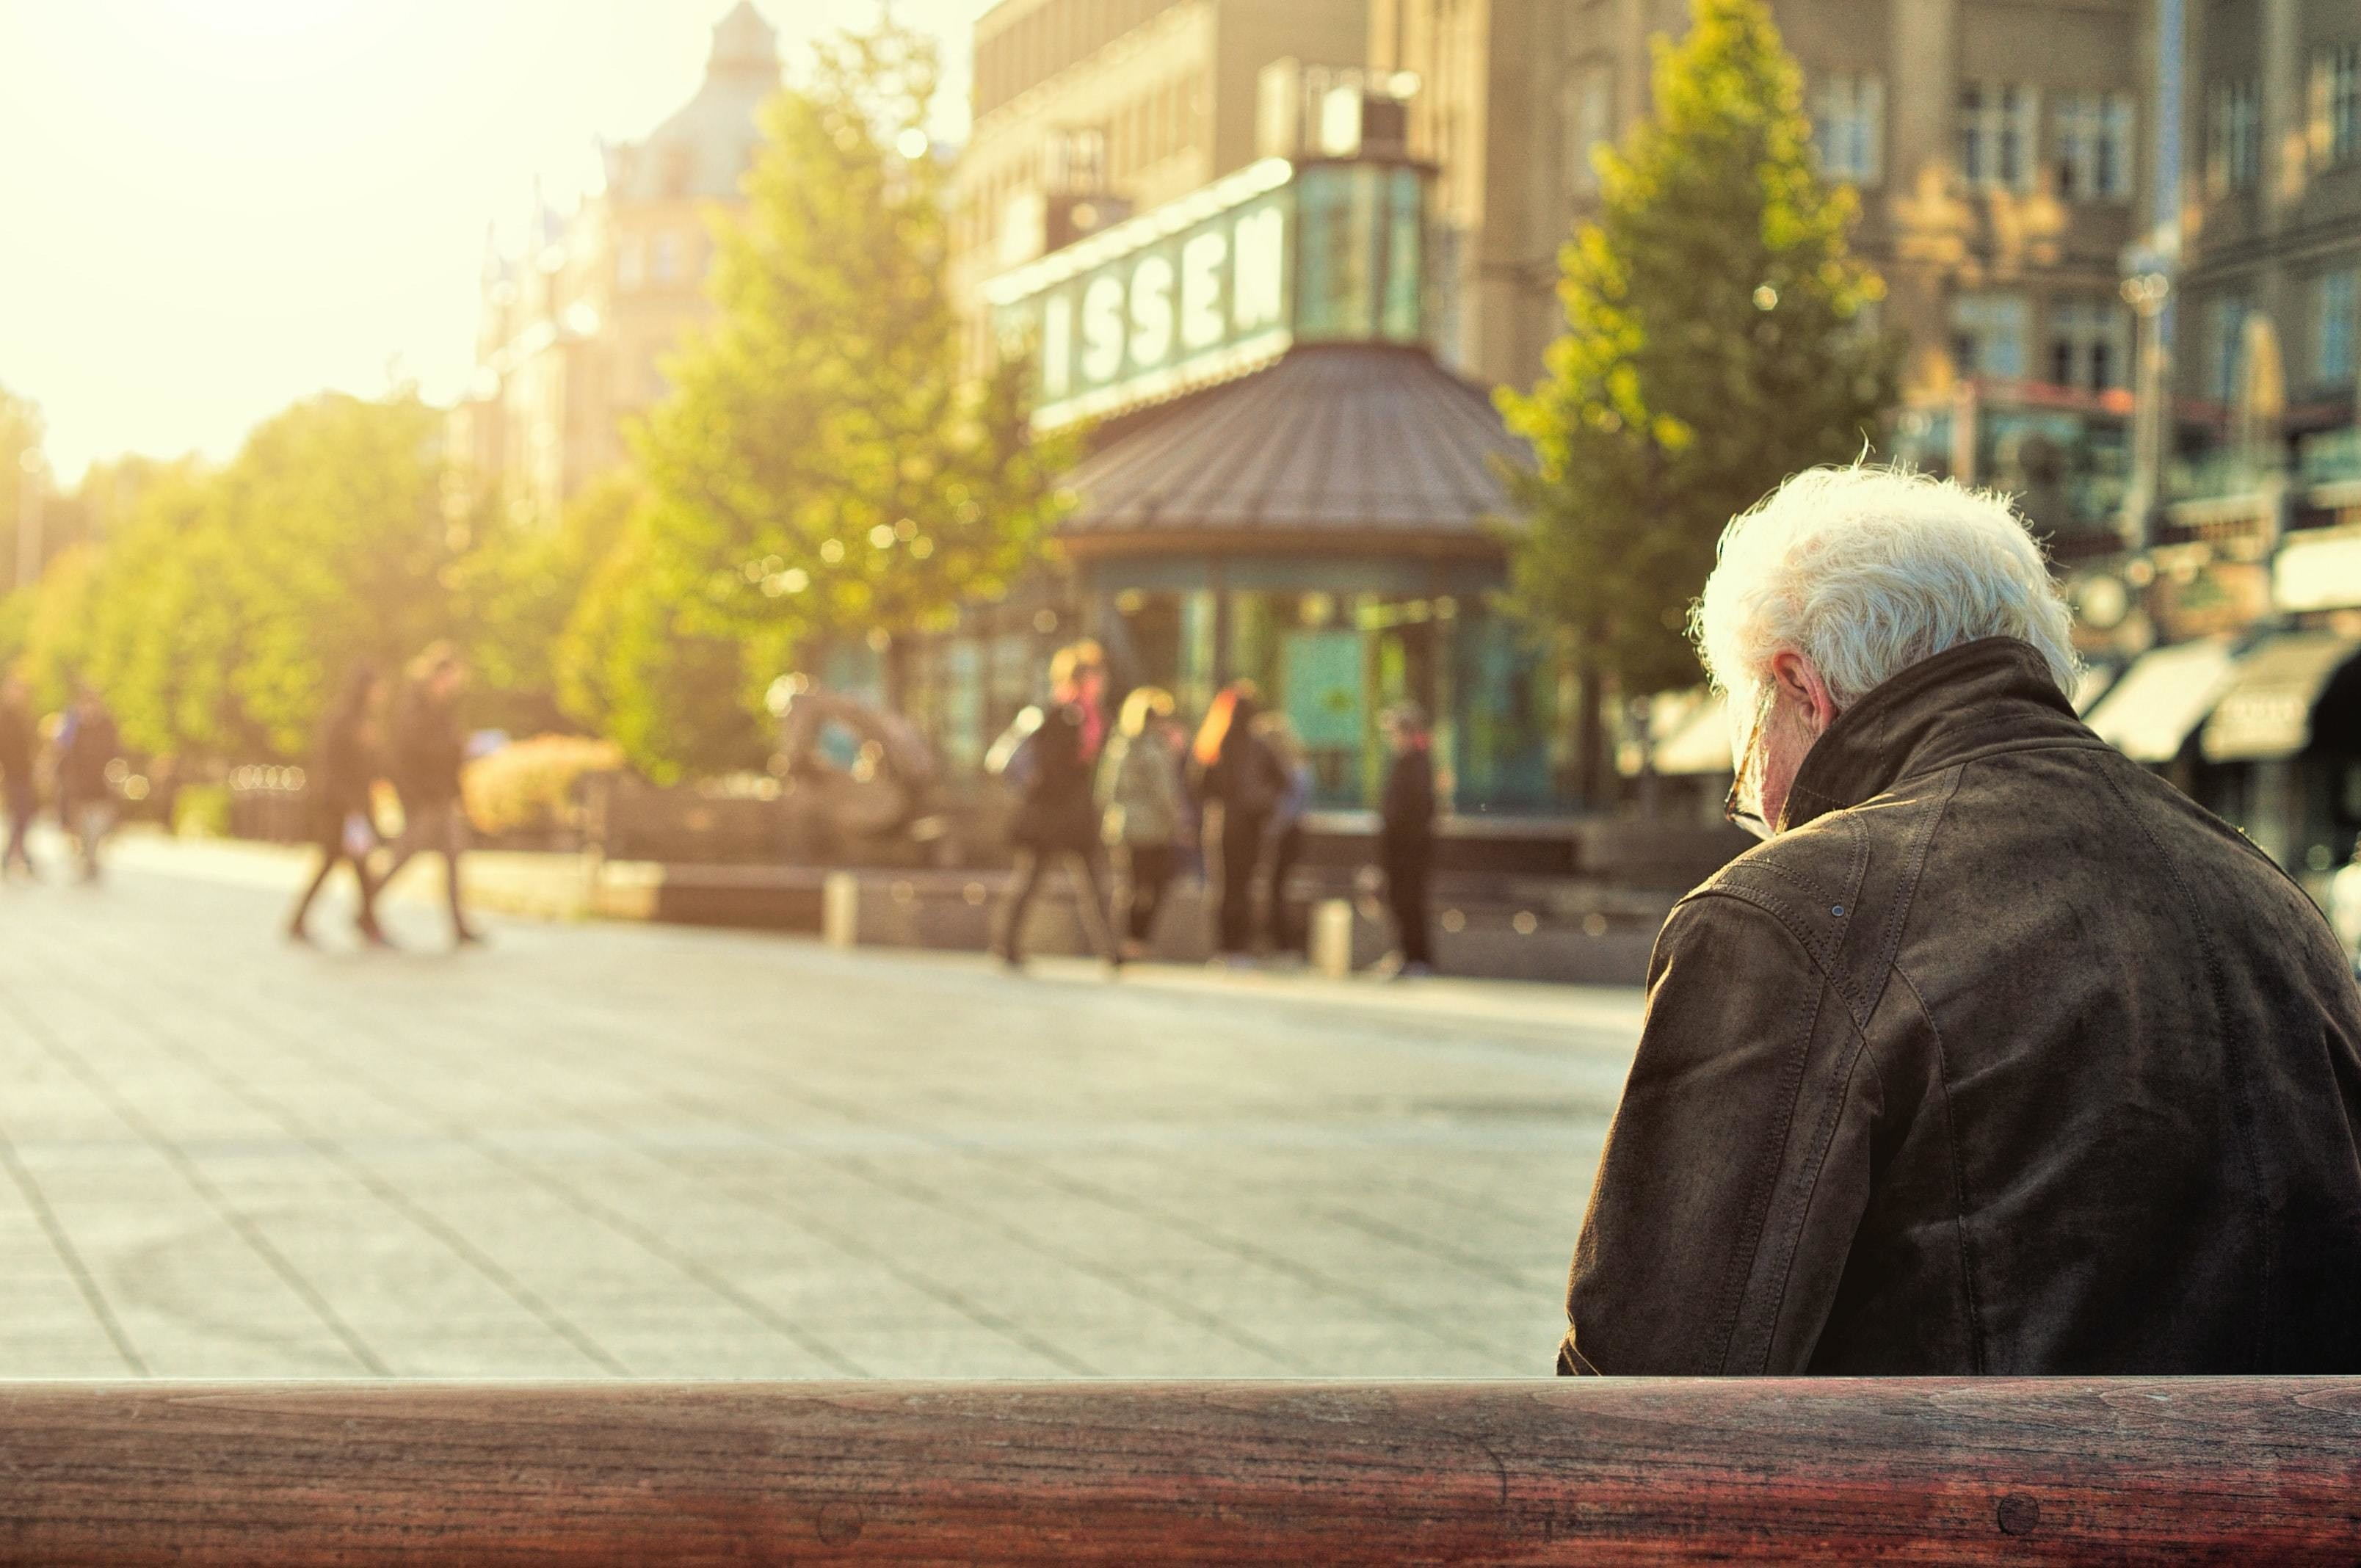 older people, like this man here, may have experienced more loneliness as a result of COVID-19